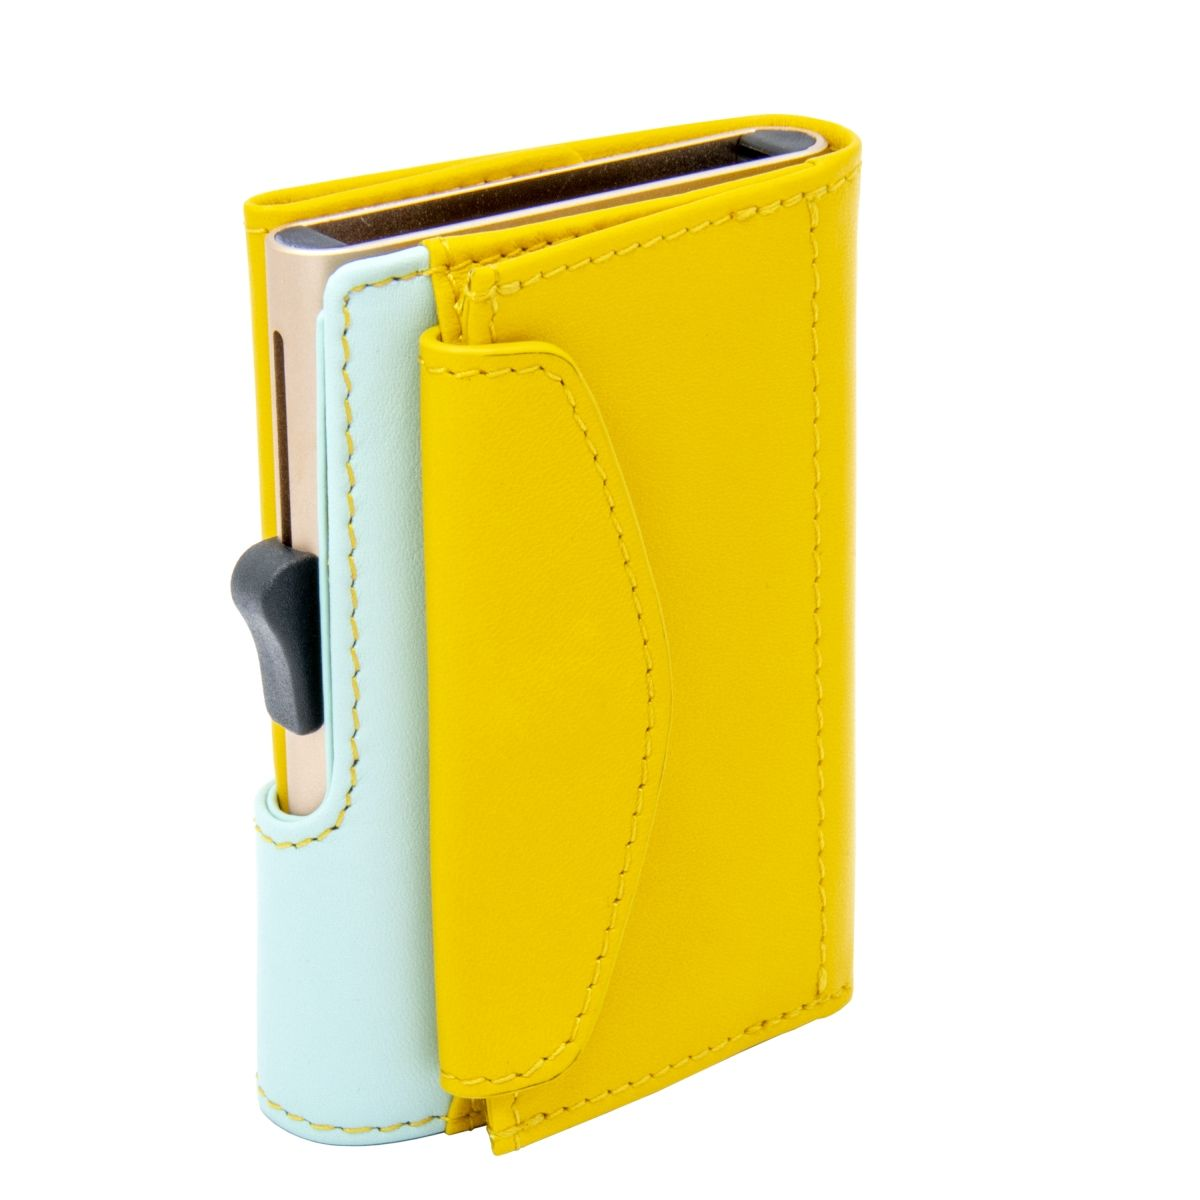 C-Secure XL Aluminum Wallet with Genuine Leather and Coins Pocket - Saffron/Aqua